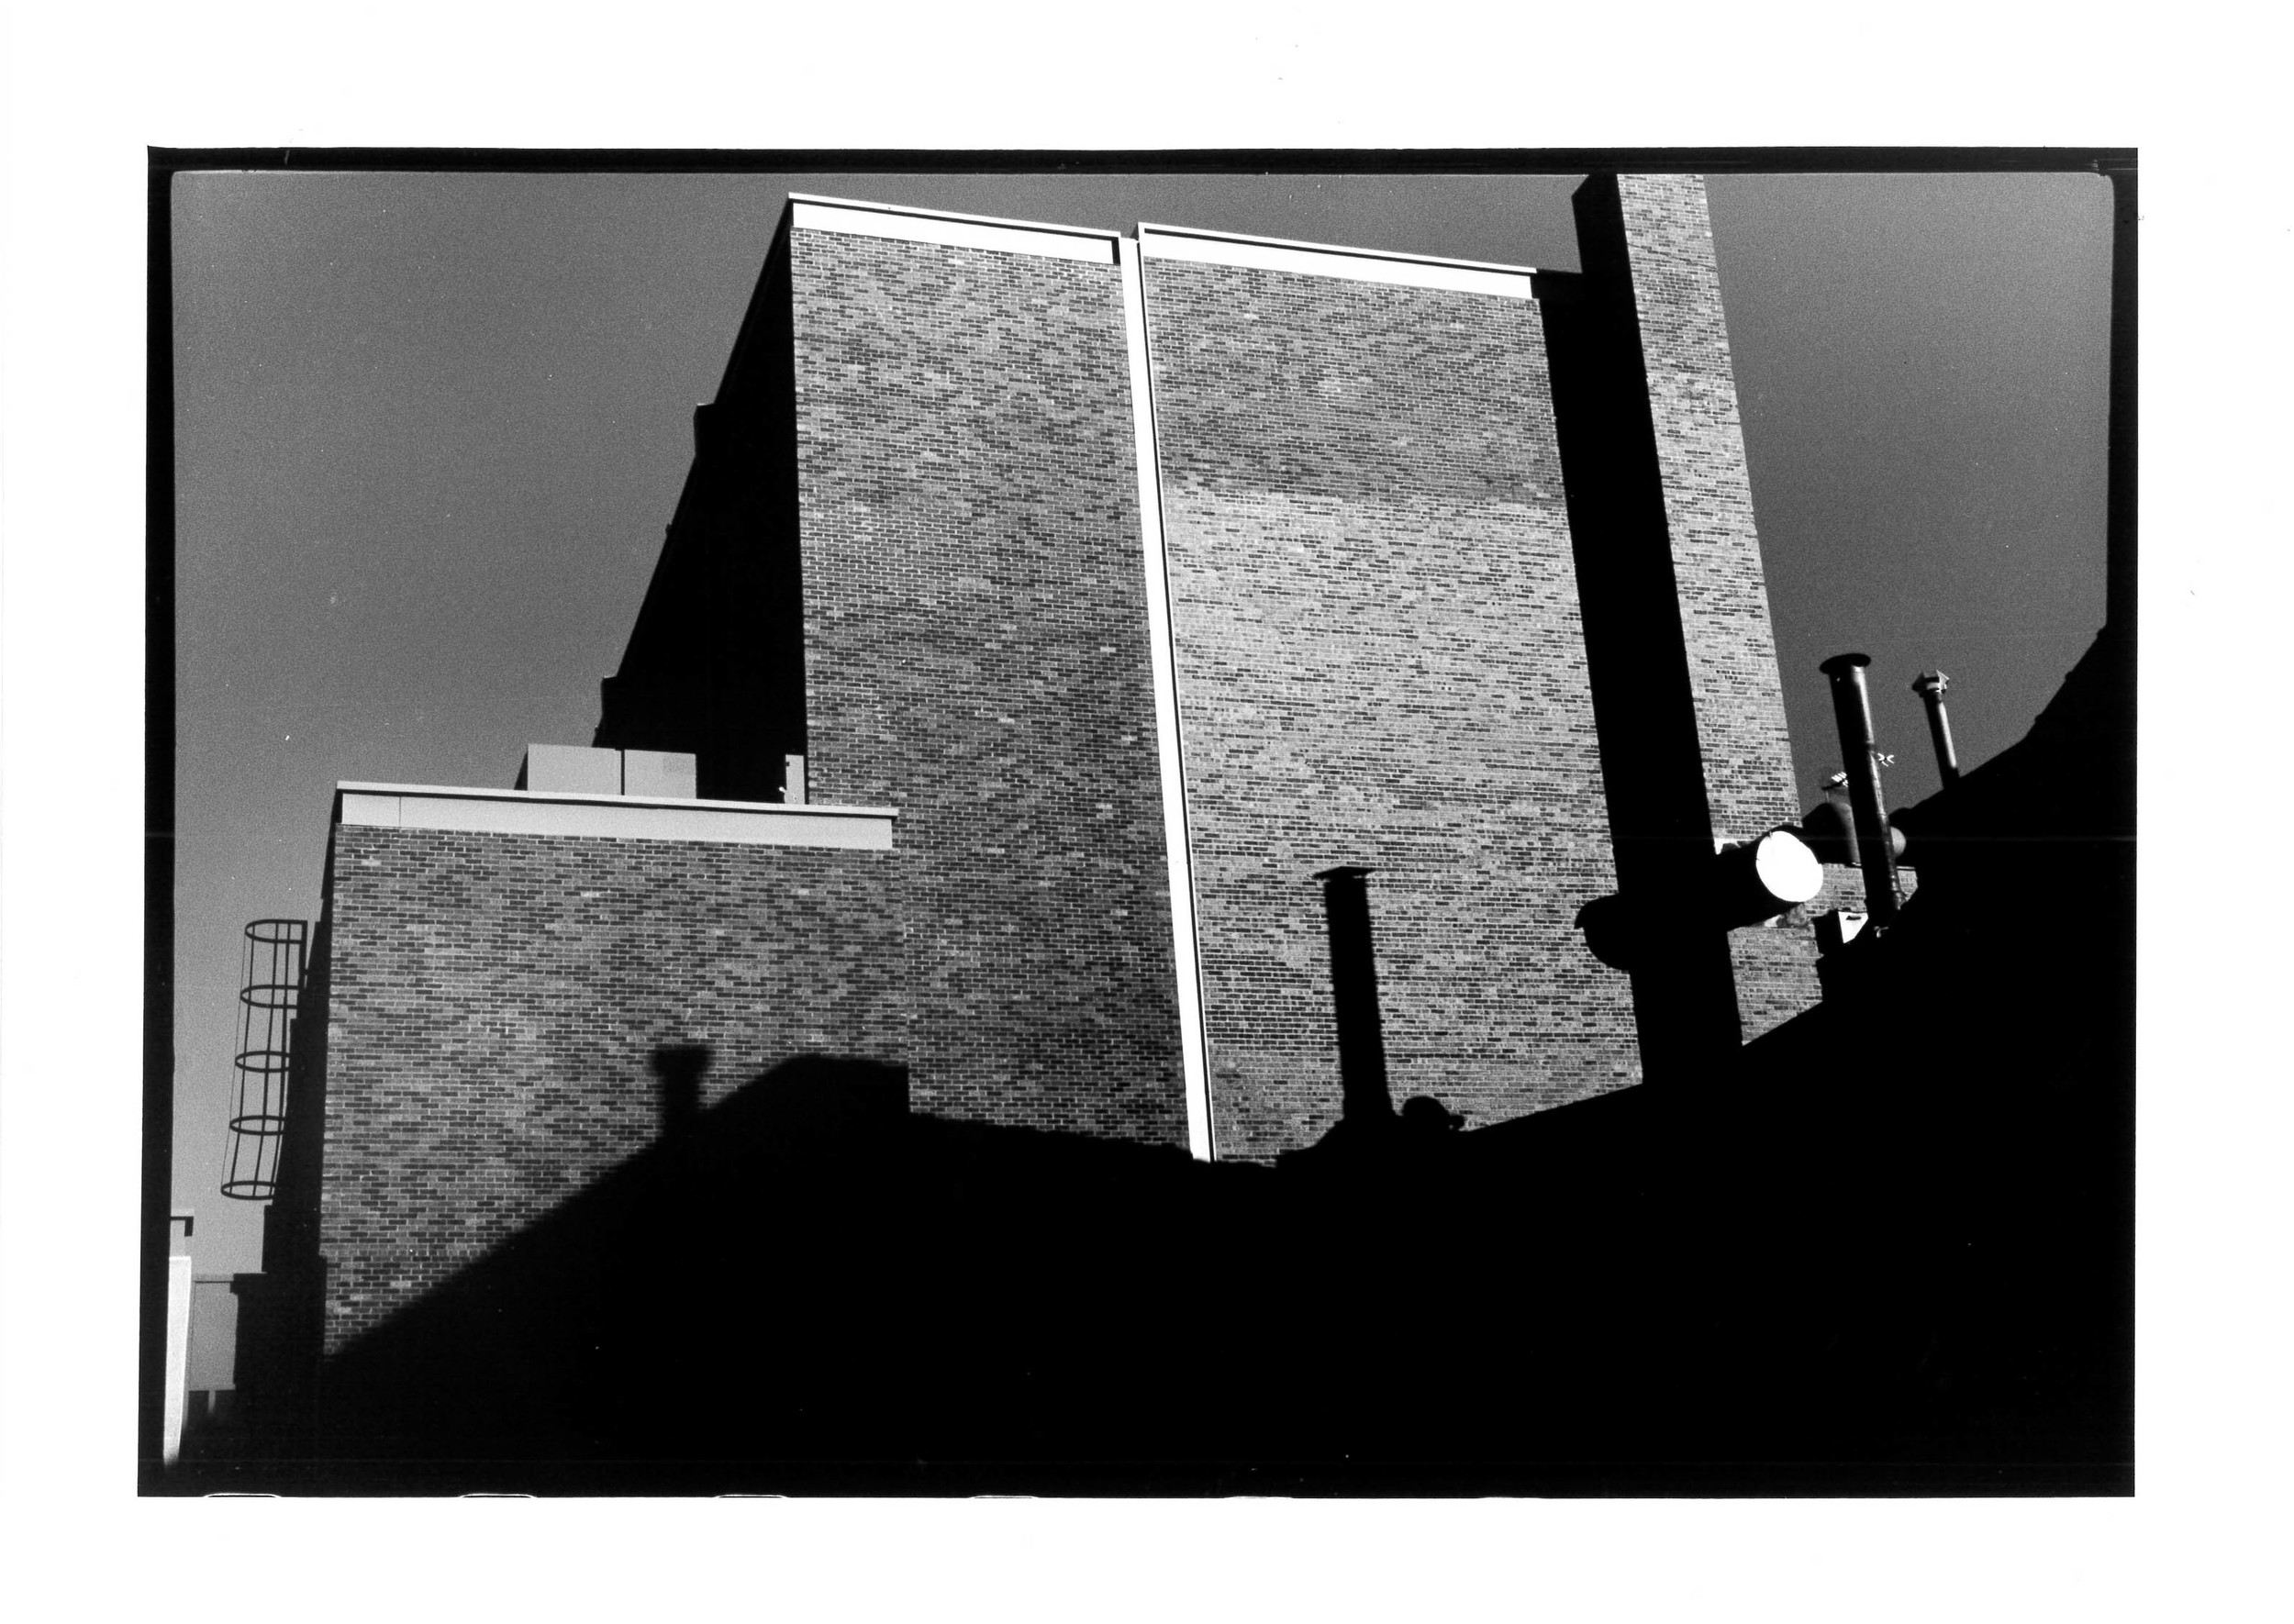 Building in shadow, New Mexico 2011 24x36 cm